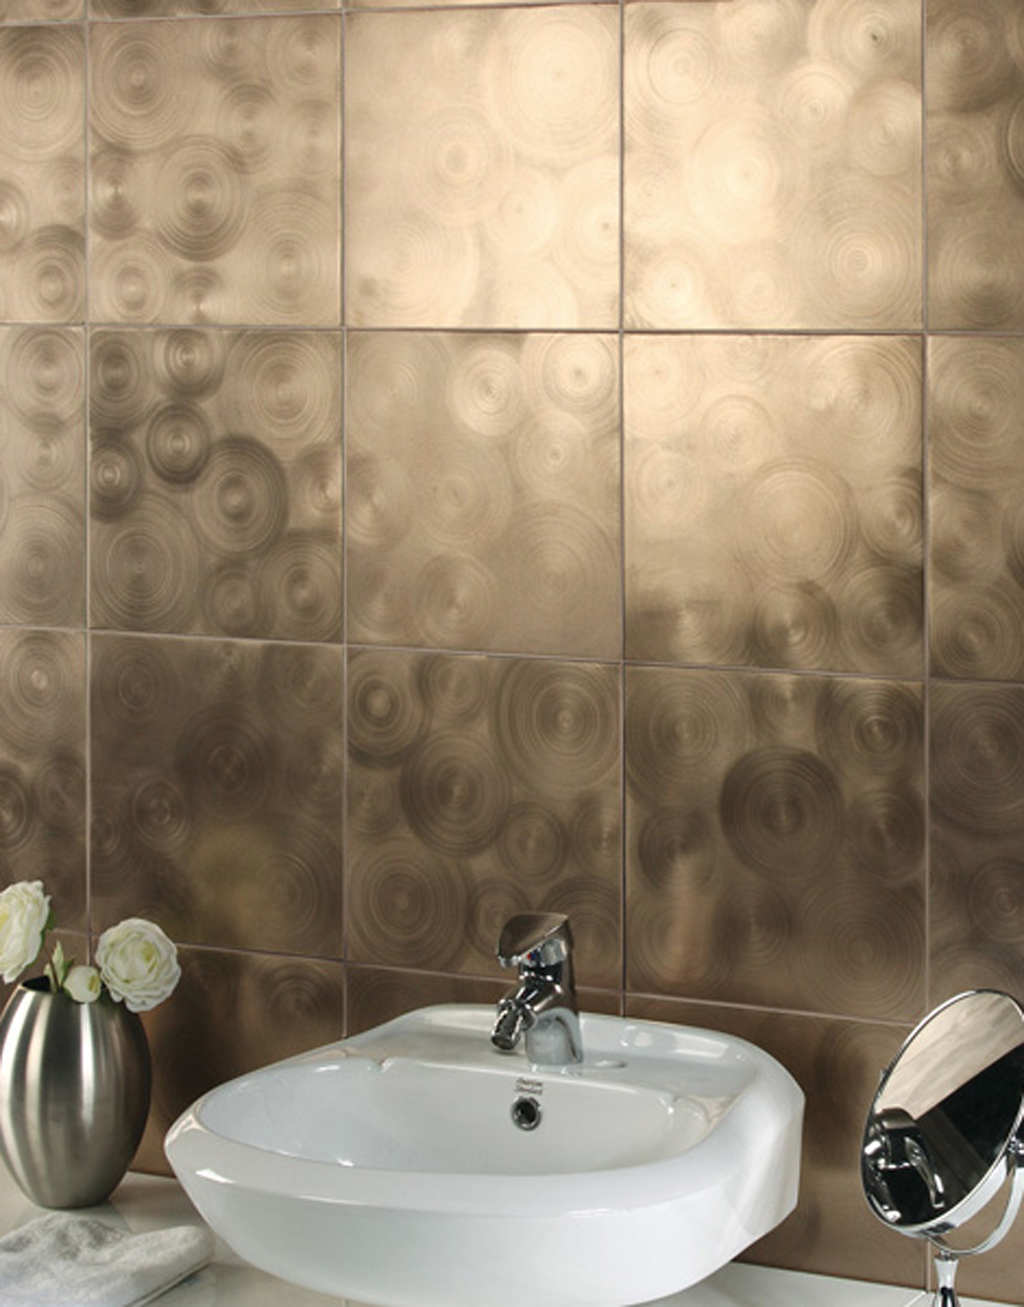 ideas-decorative-wall-tiles